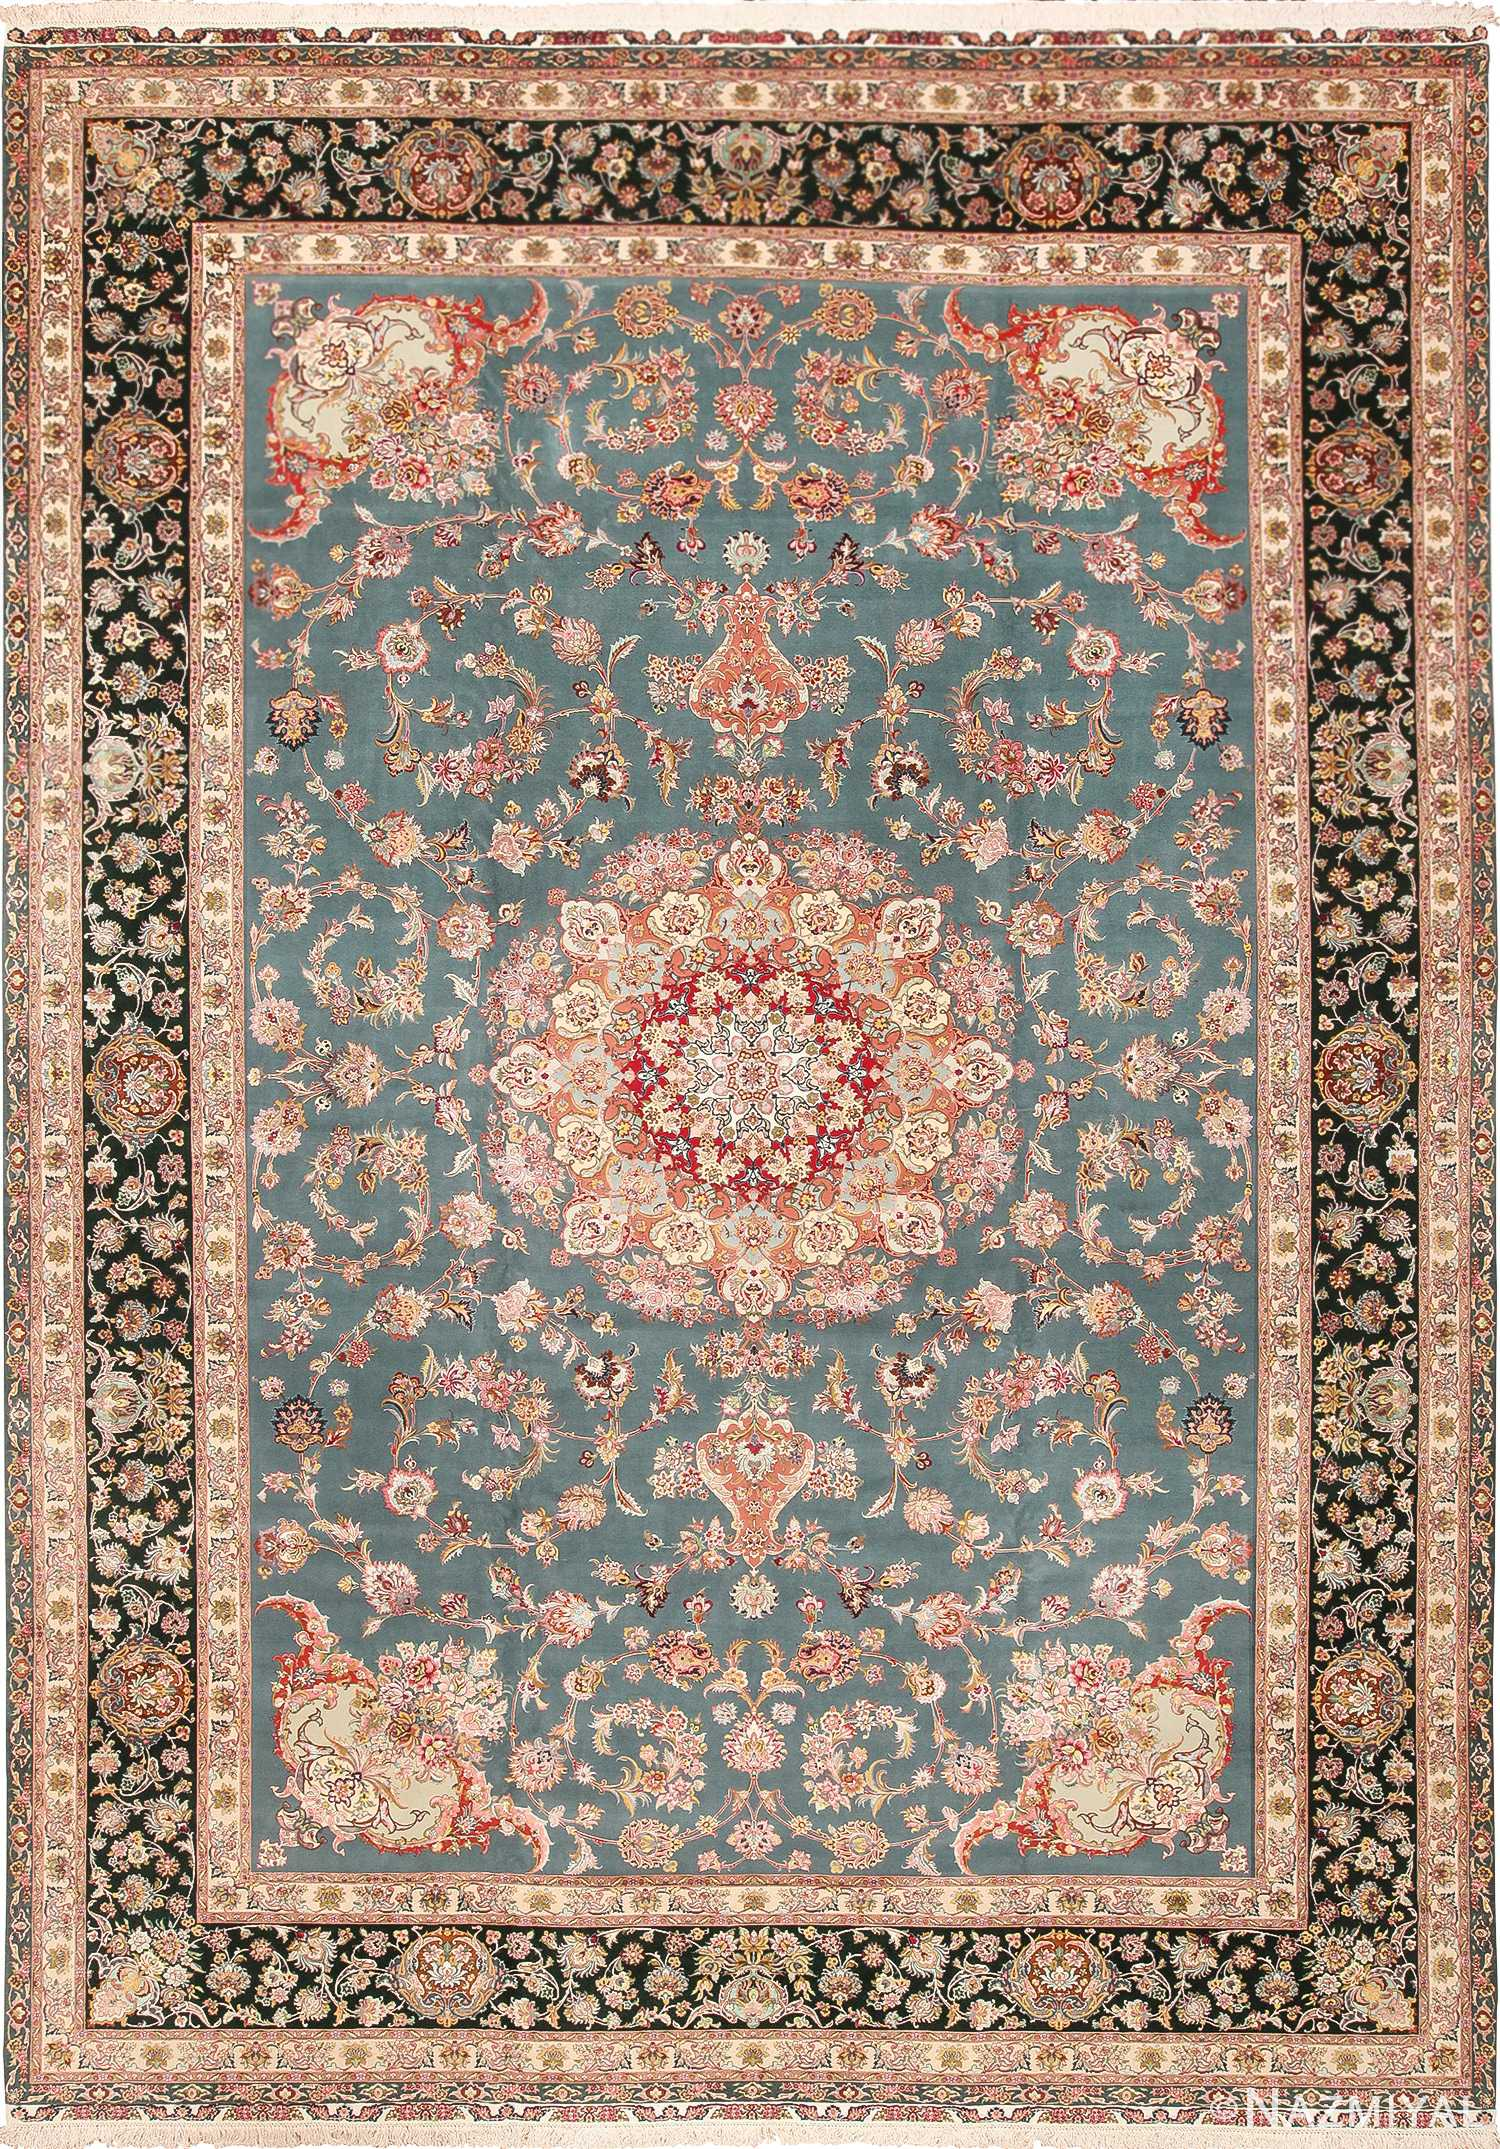 Large Fine Silk Wool Vintage Persian Tabriz Rug 60027 Nazmiyal